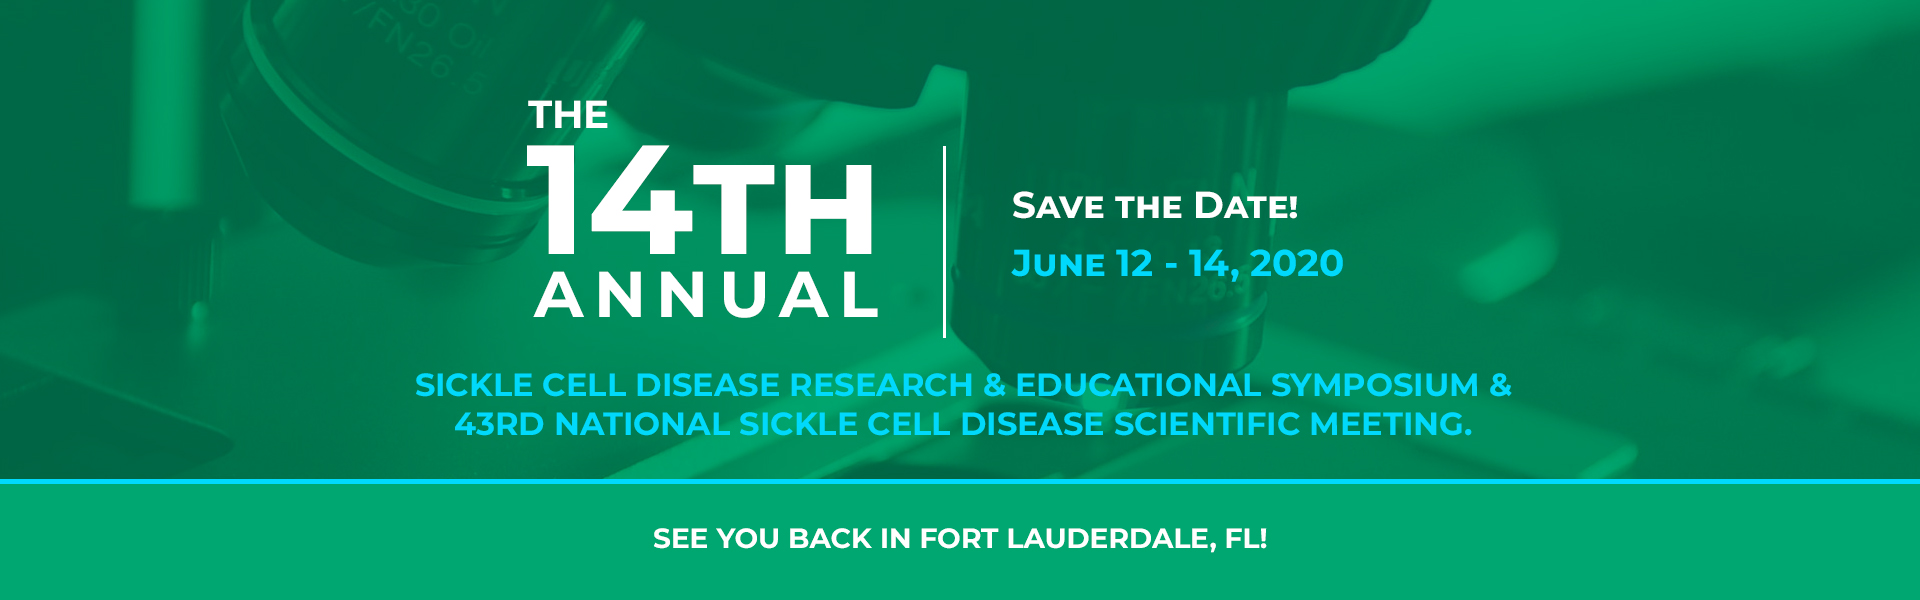 The Symposium | The Foundation for Sickle Cell Disease Research